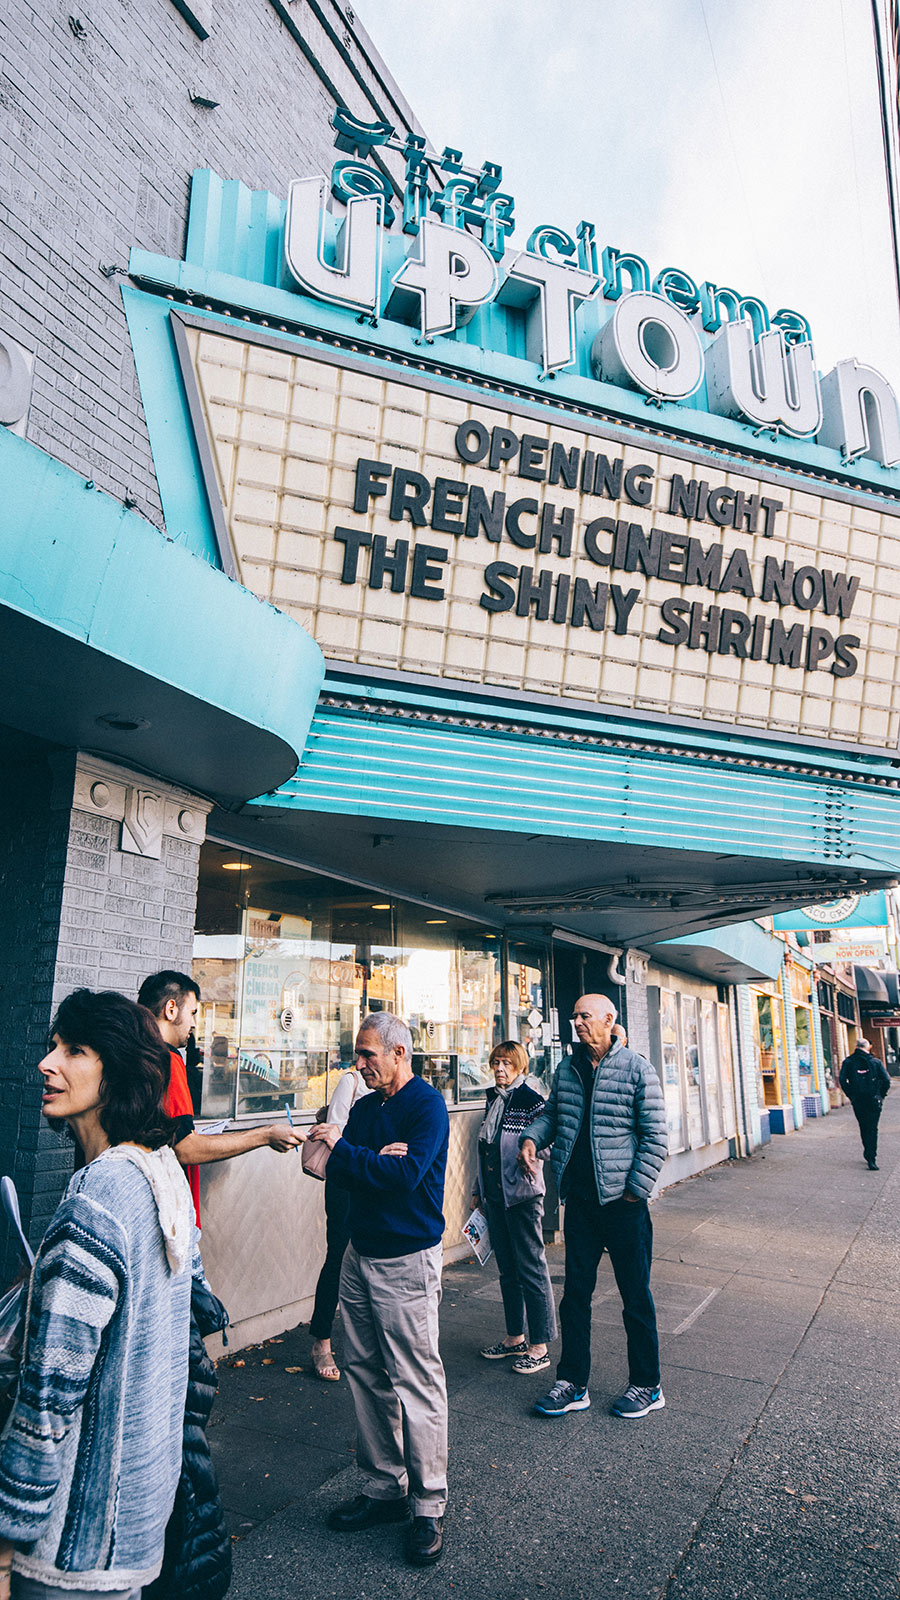 French Cinema Now Opening Night Uptown